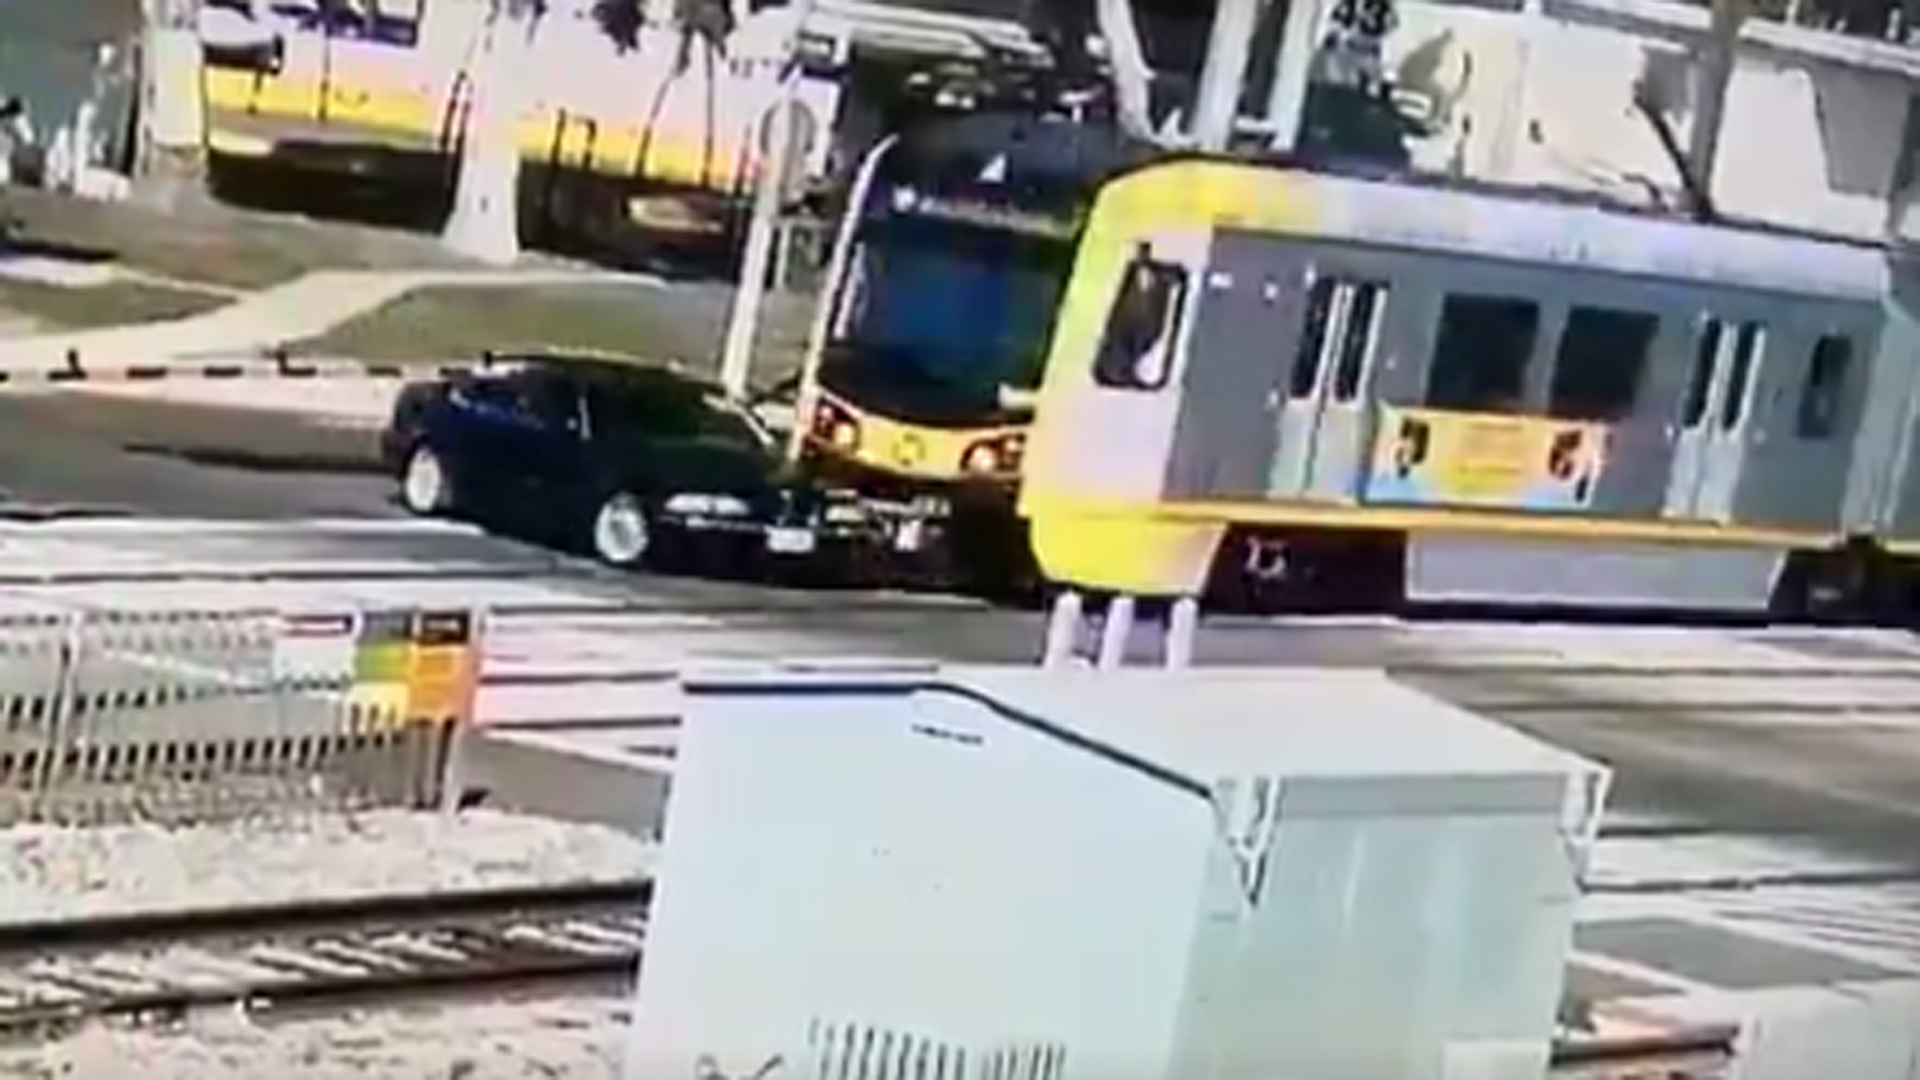 LAPD officials shared video of a Blue Line train crashing into a car in Long Beach on March 3, 2020.